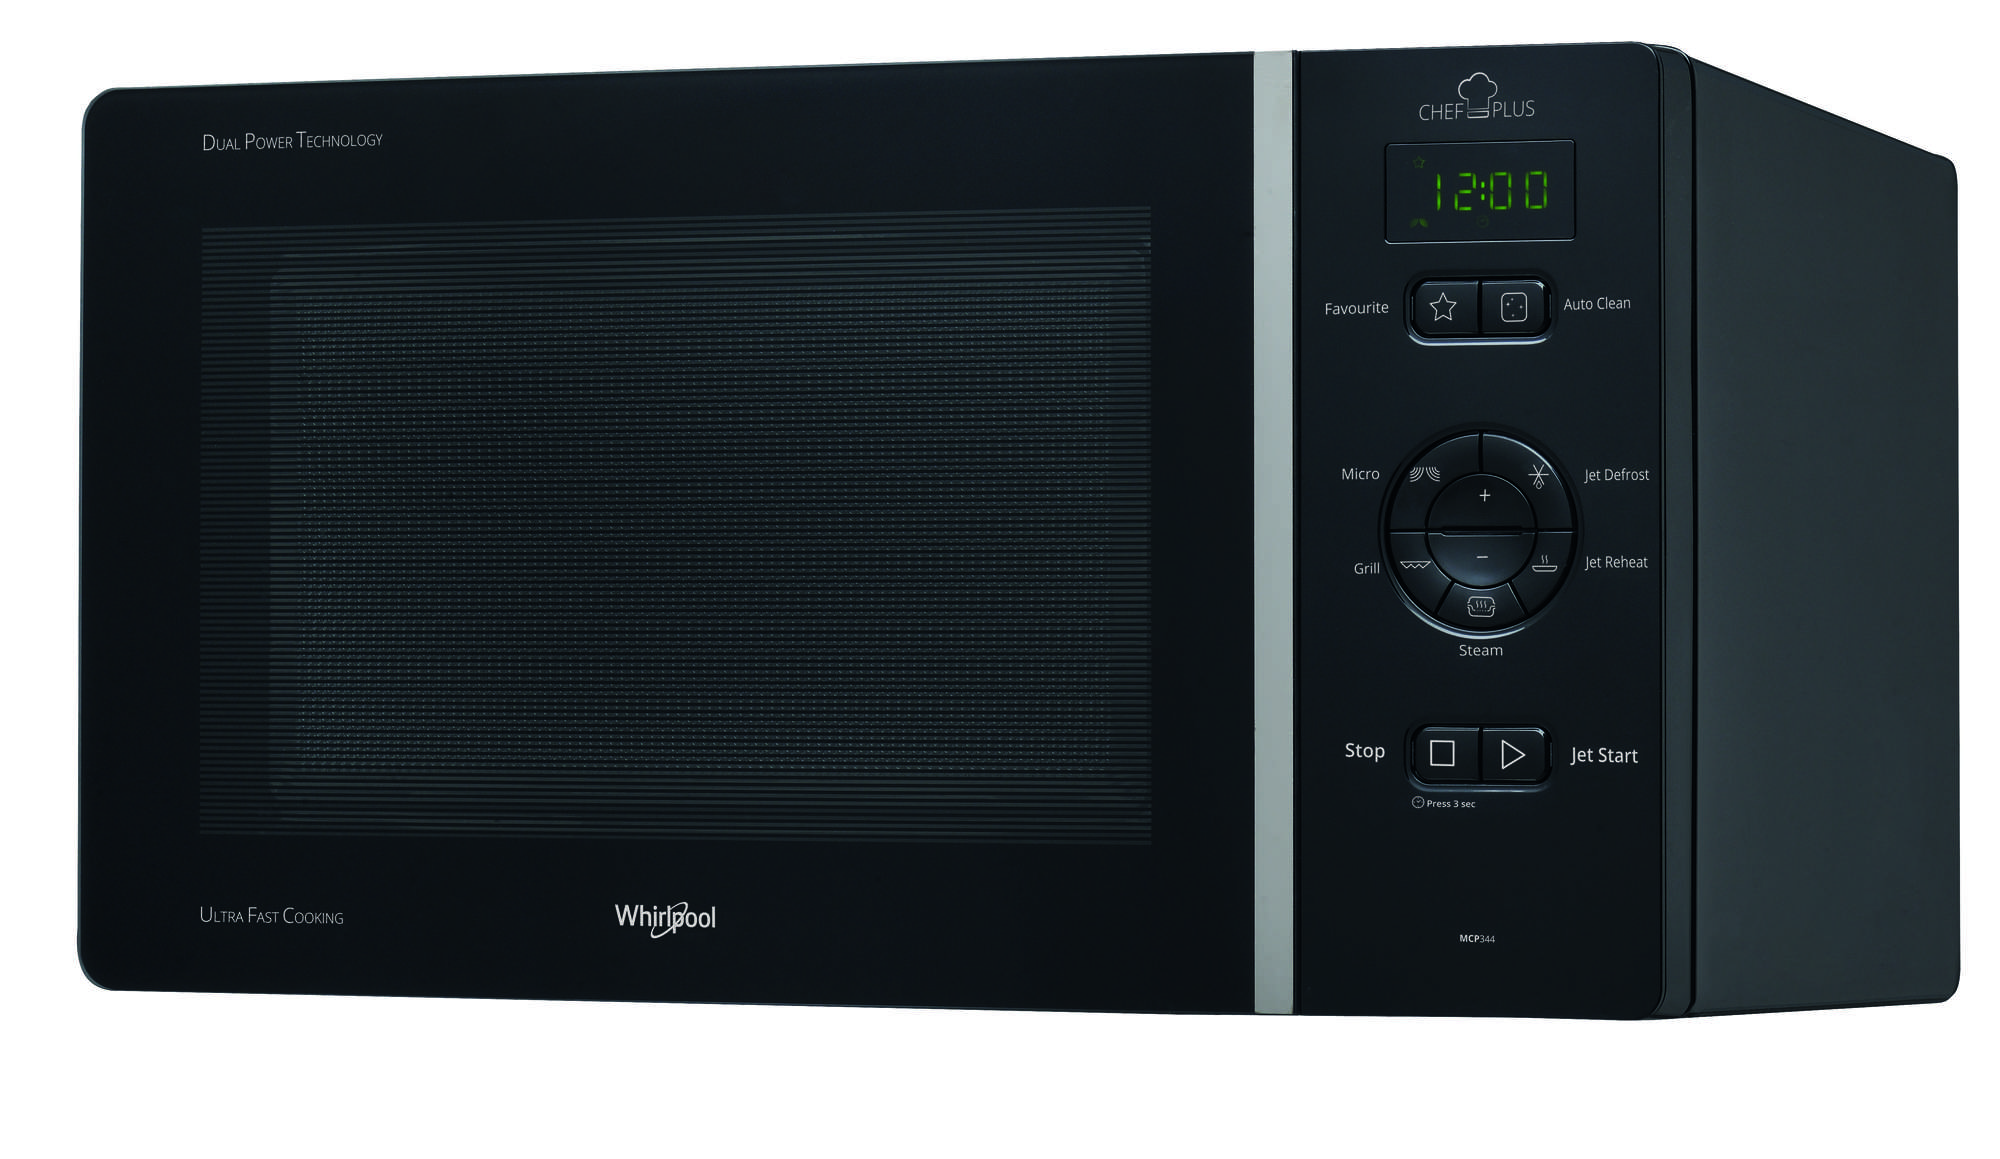 whirlpool mcp344nb pas cher - micro ondes grill whirlpool